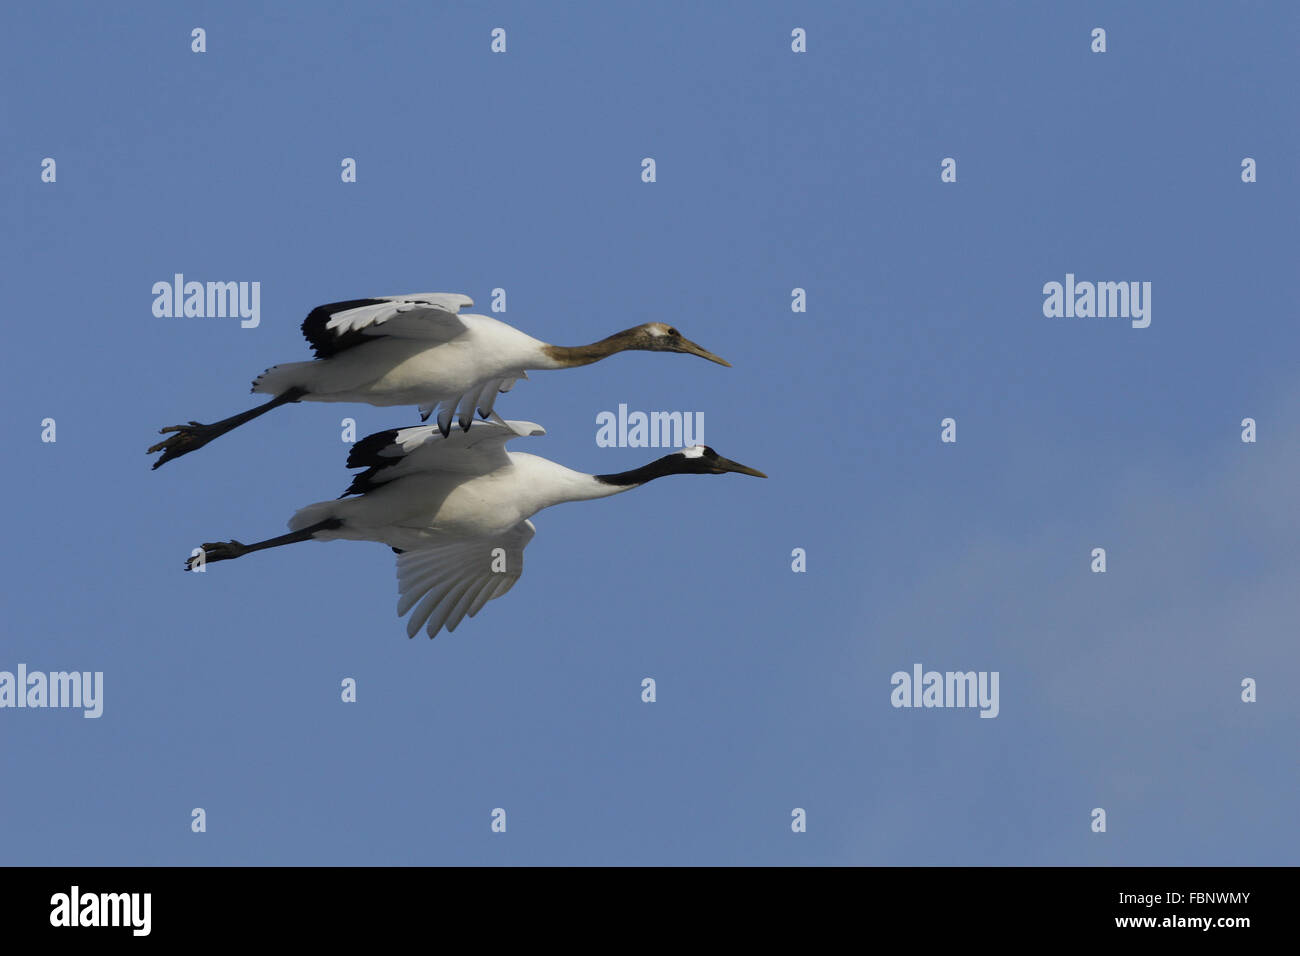 Red-crowned Cranes in flight grus japonensis - Stock Image